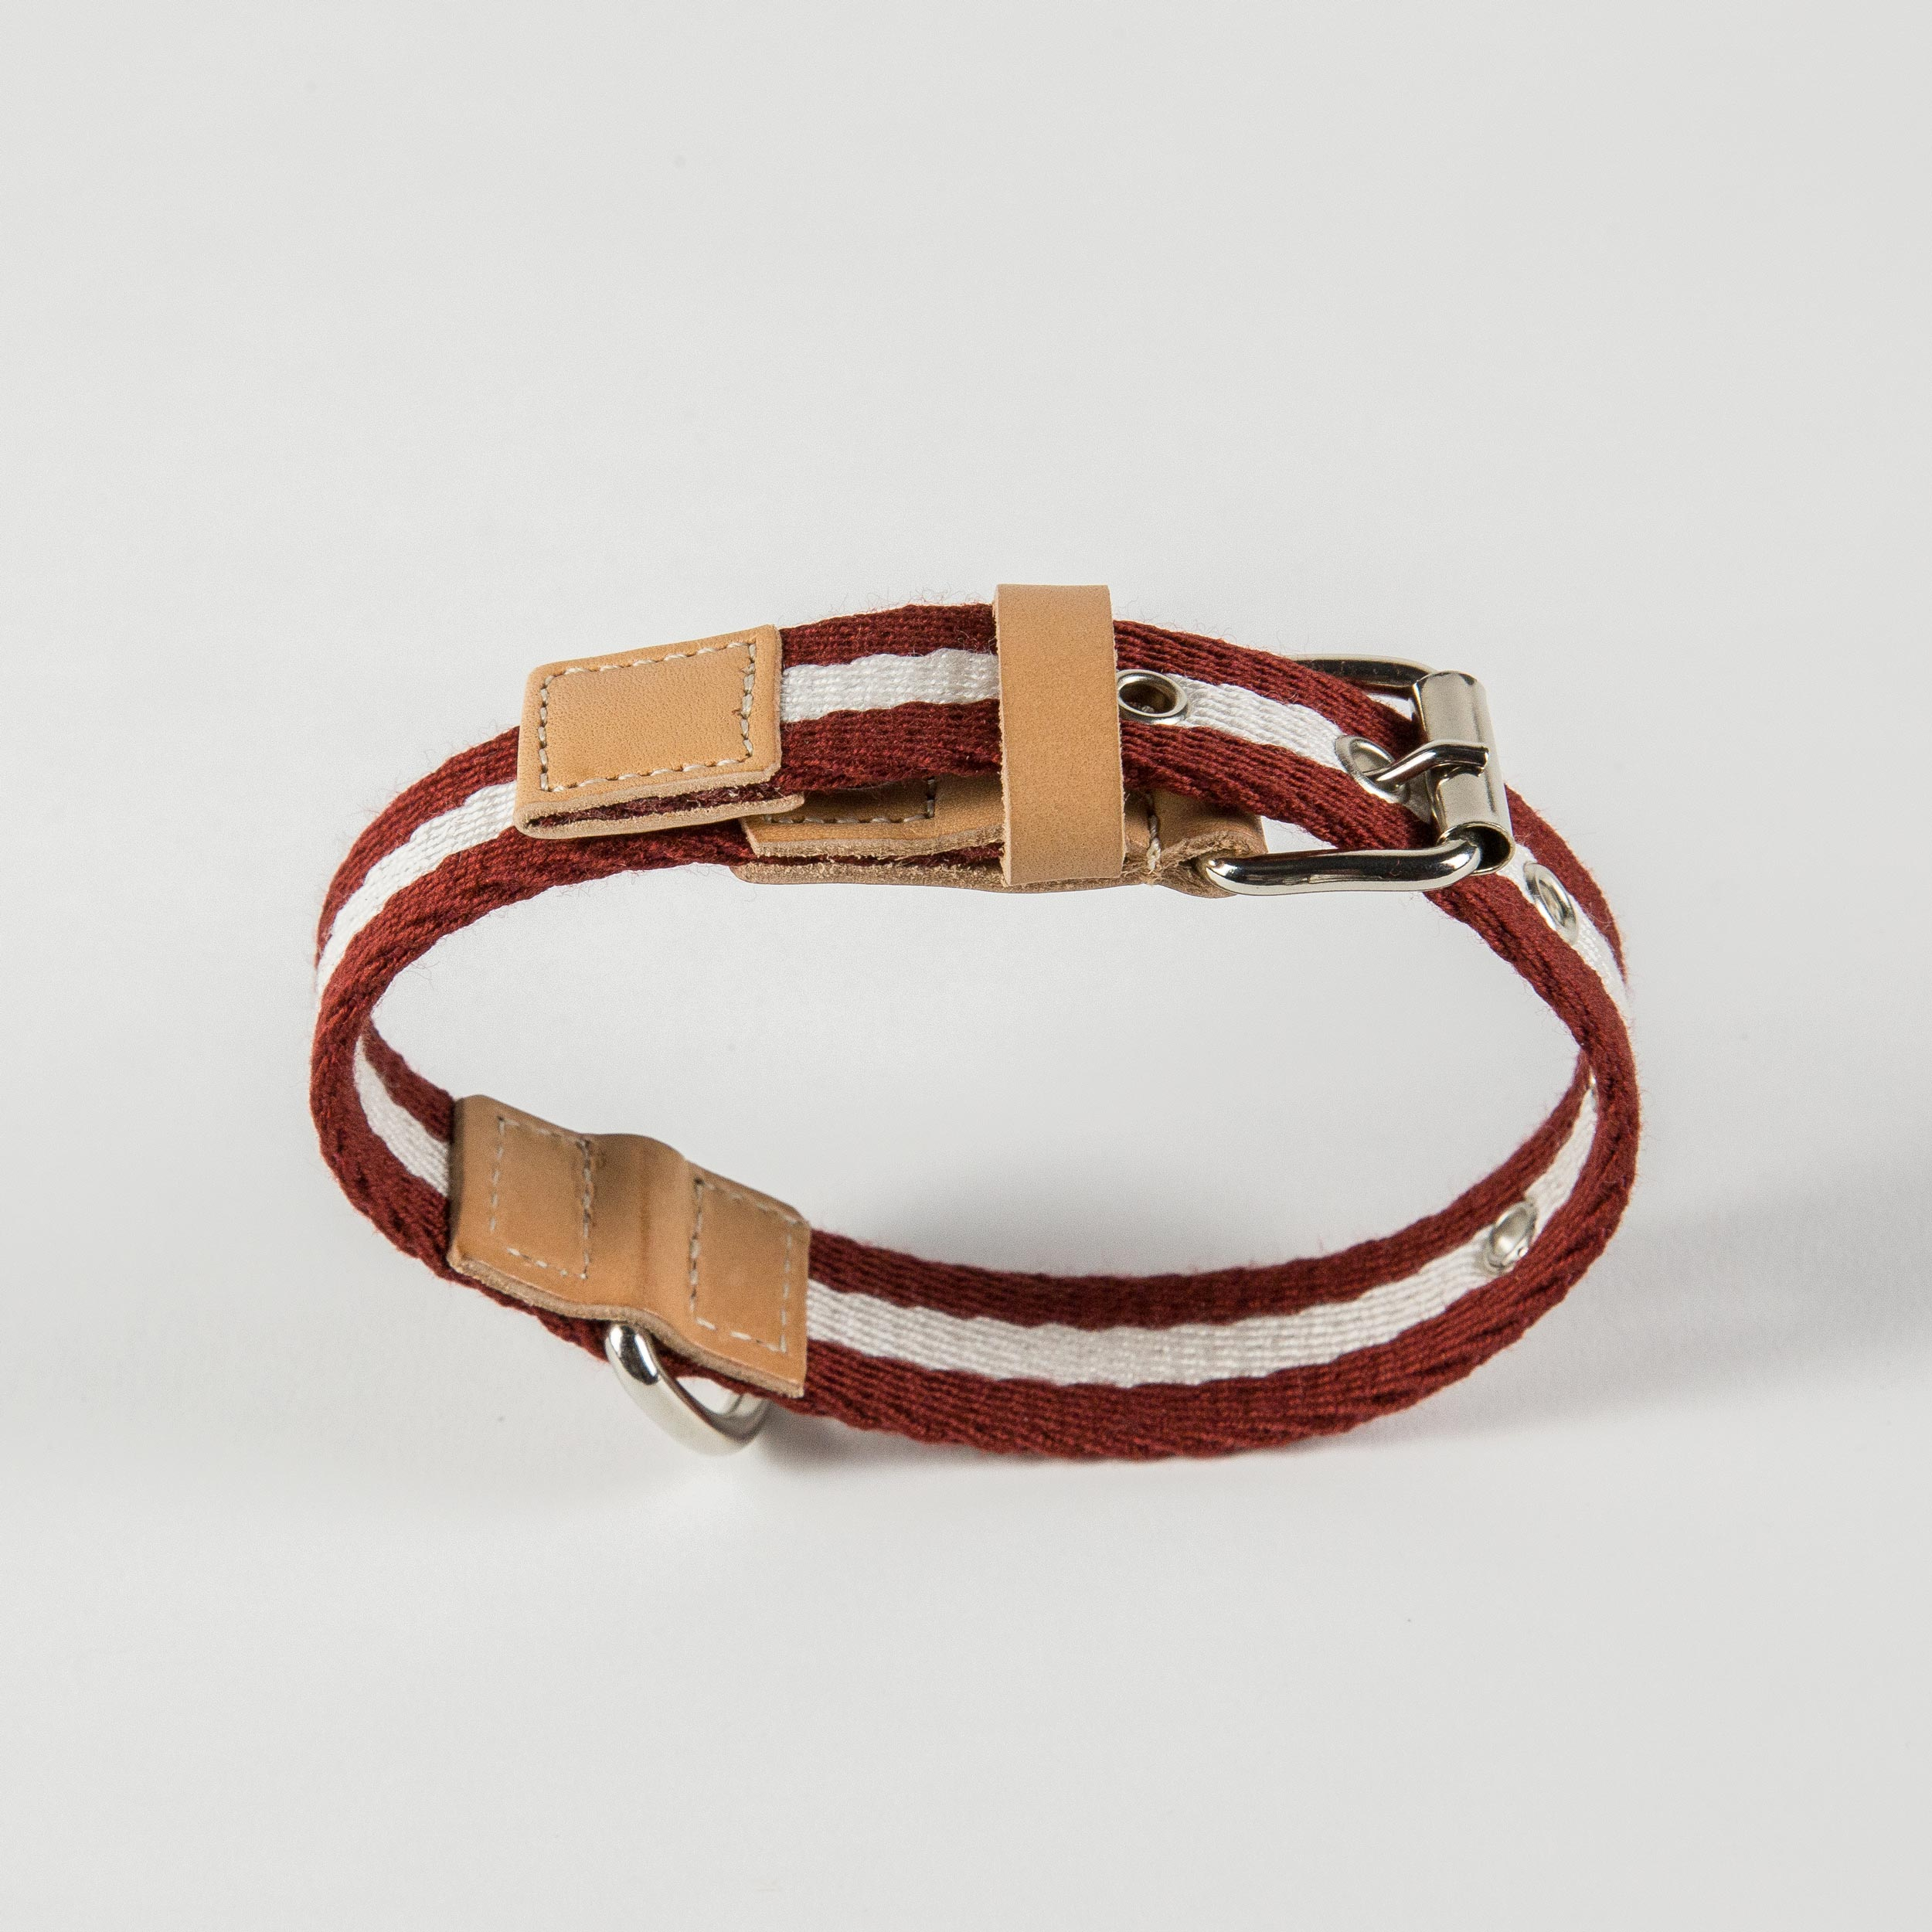 collar for dogs in bordeaux/cream fabric and leather